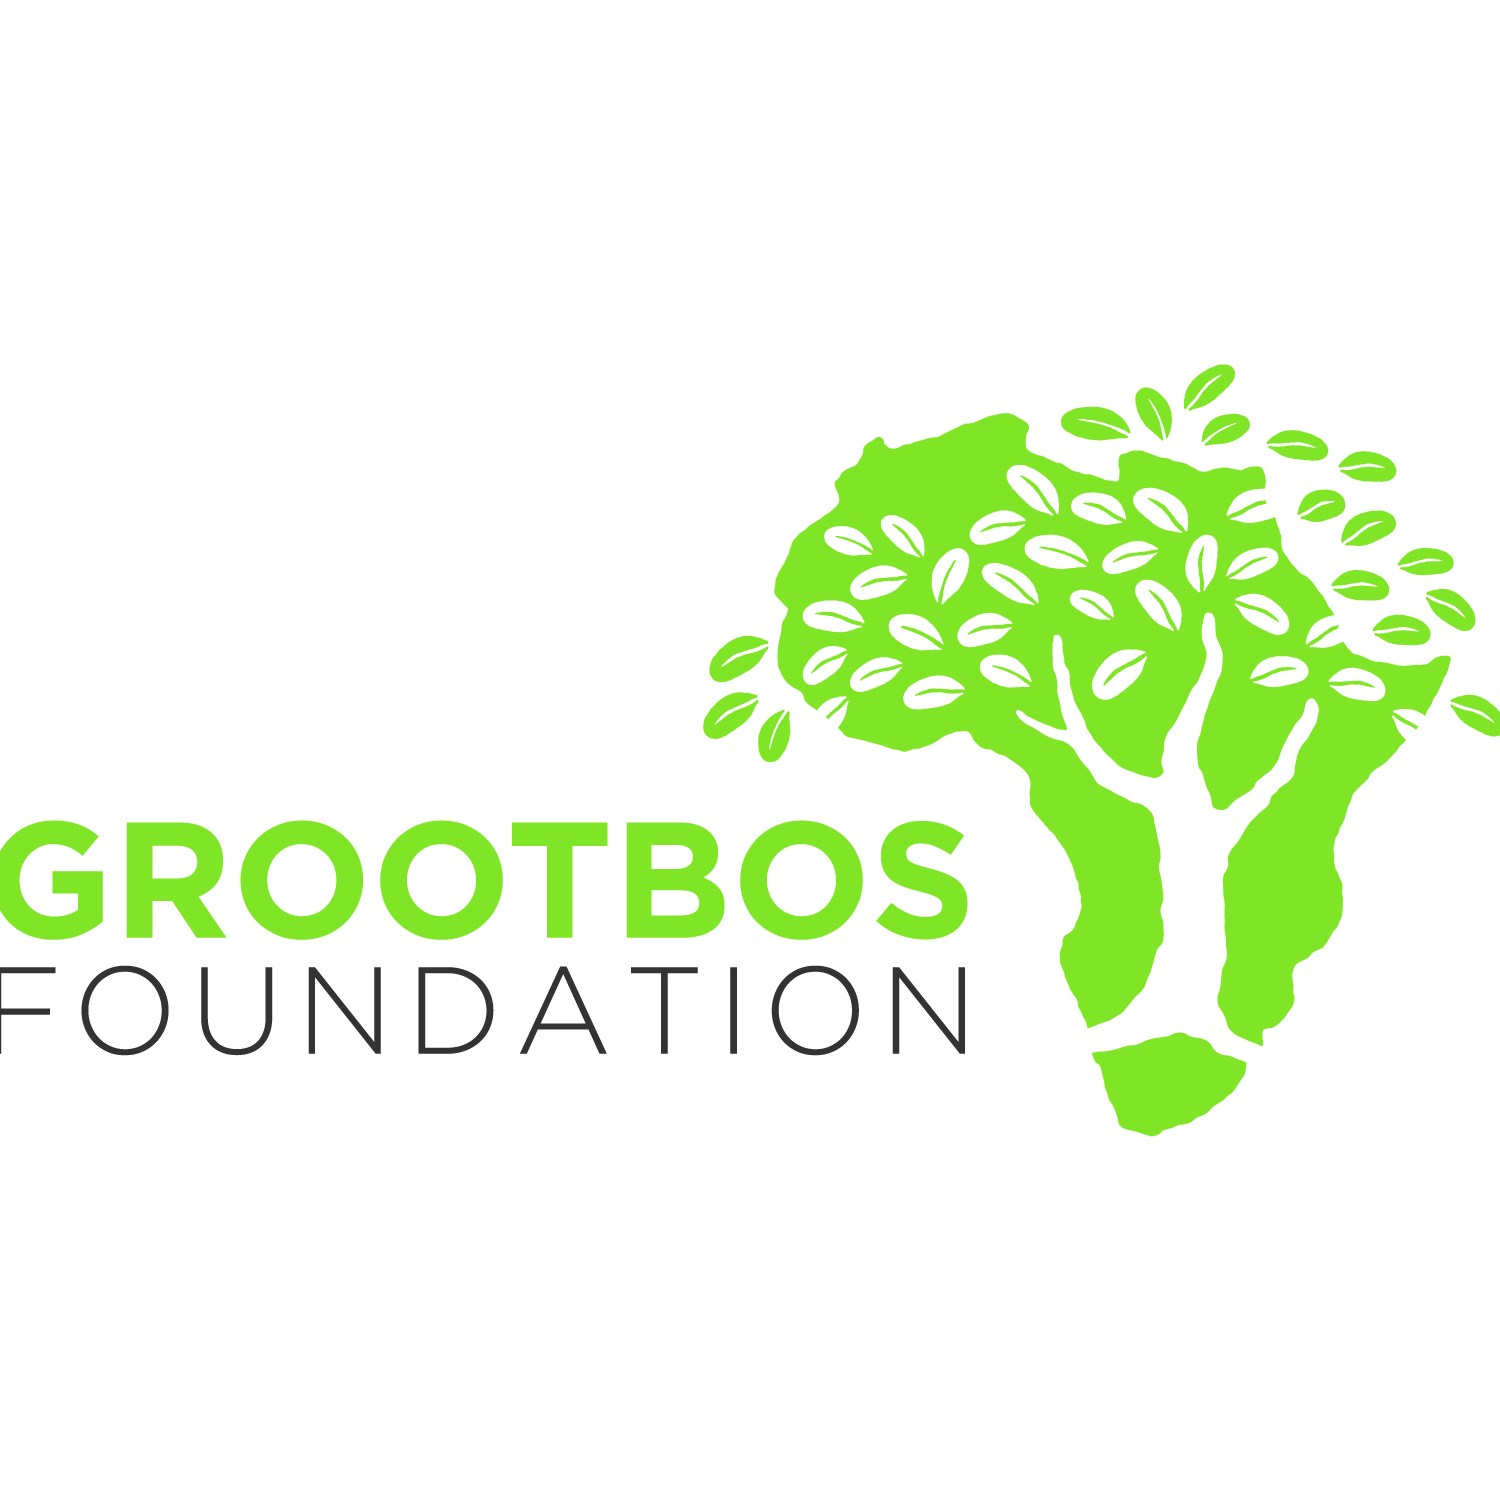 The Grootbos Foundation